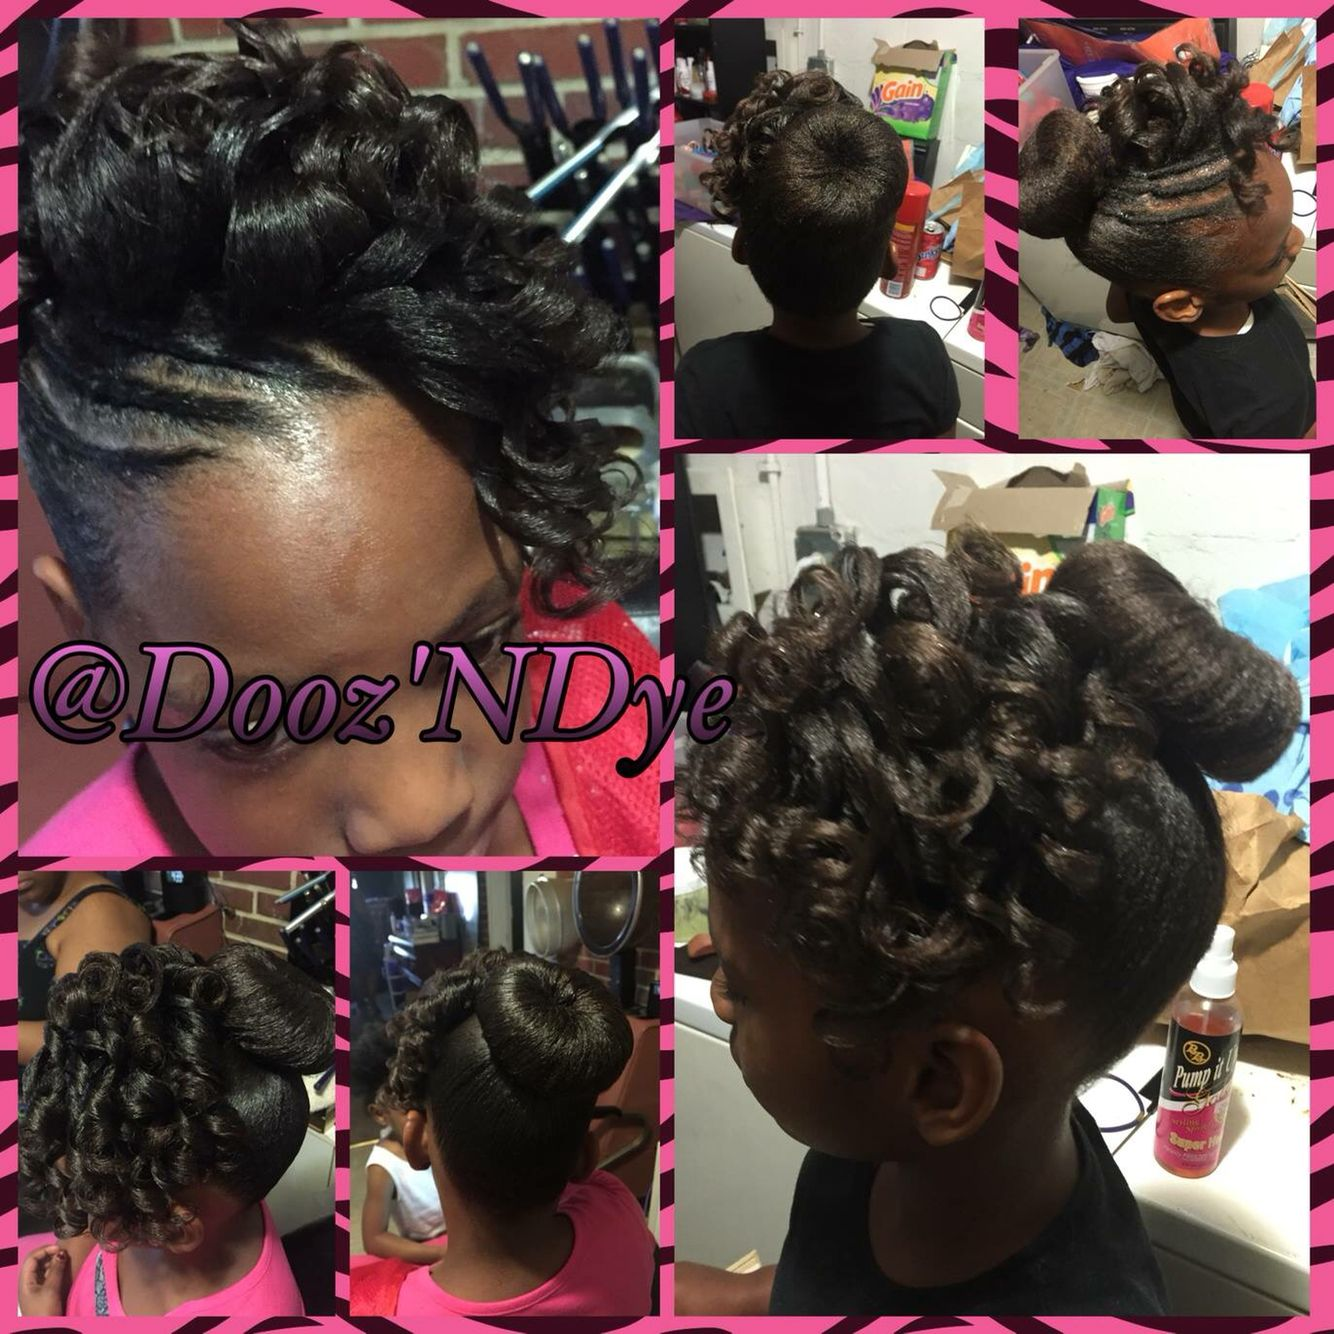 Hairstyles For Children Updo Hairstyles Texturized Hair Black Hair Care Kids Hairstyles Lil Girl Hairstyles Hair Styles